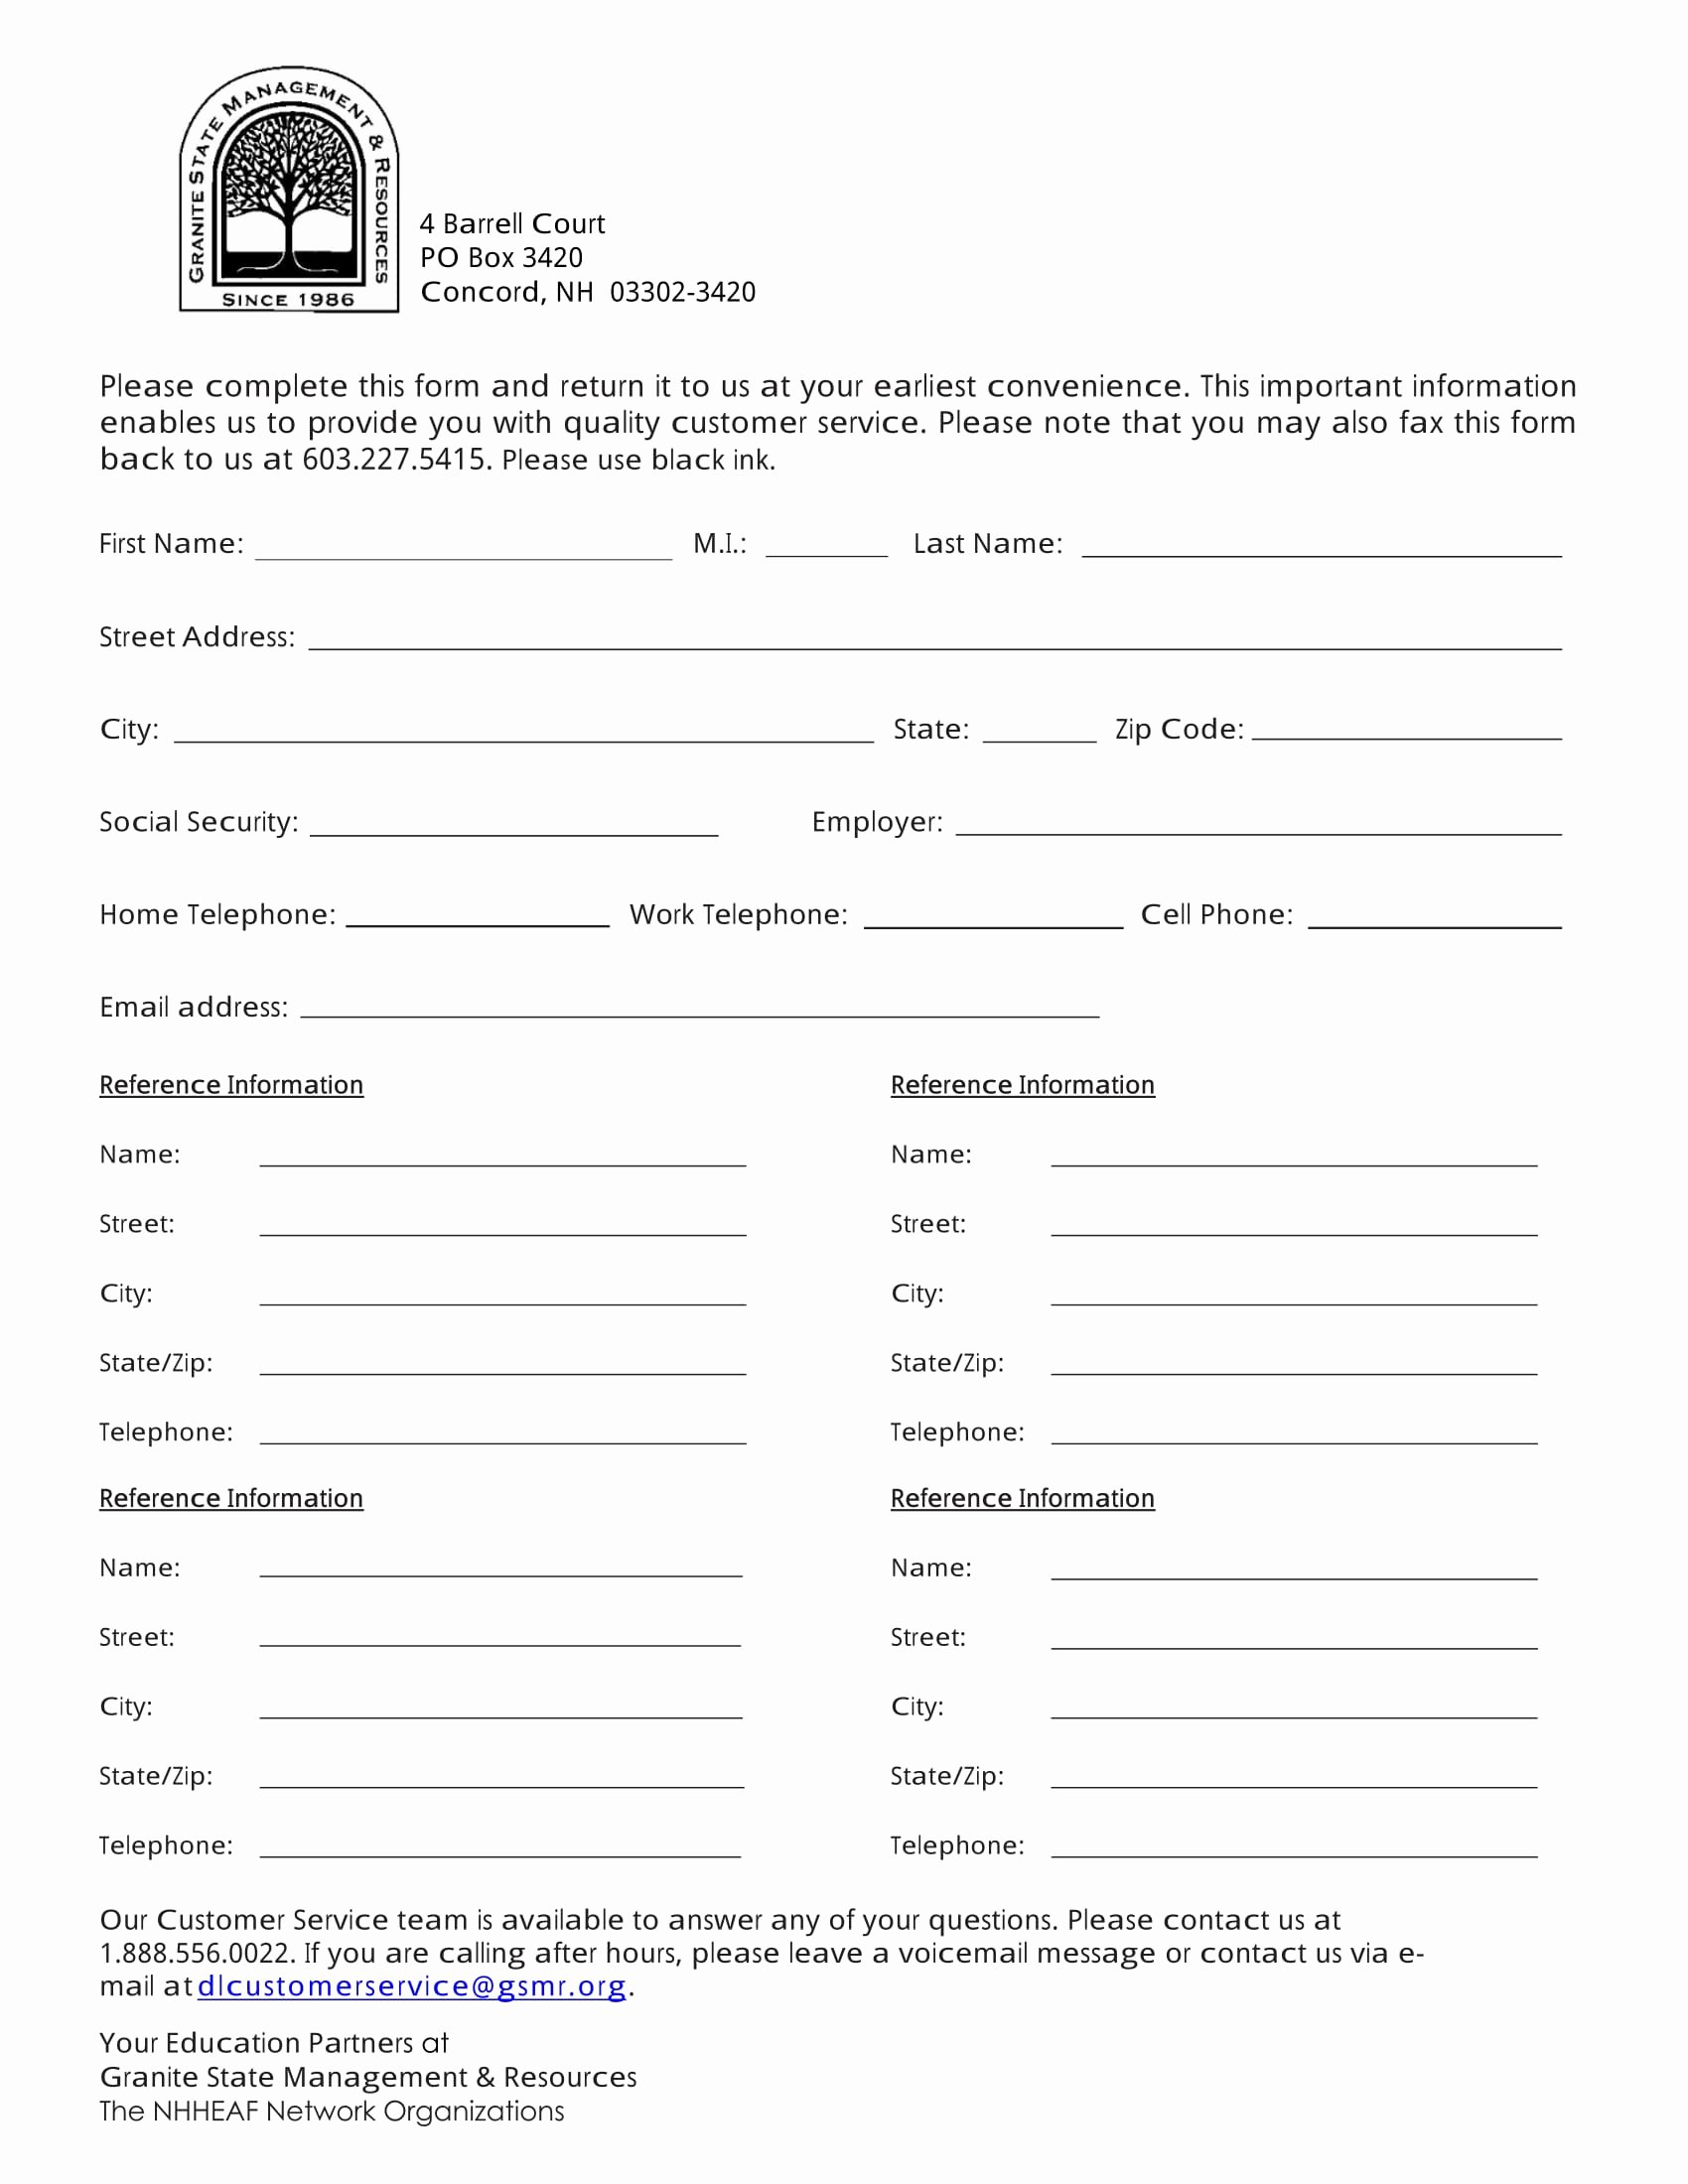 Client Contact form New 13 Contact Information forms Free Word Pdf format